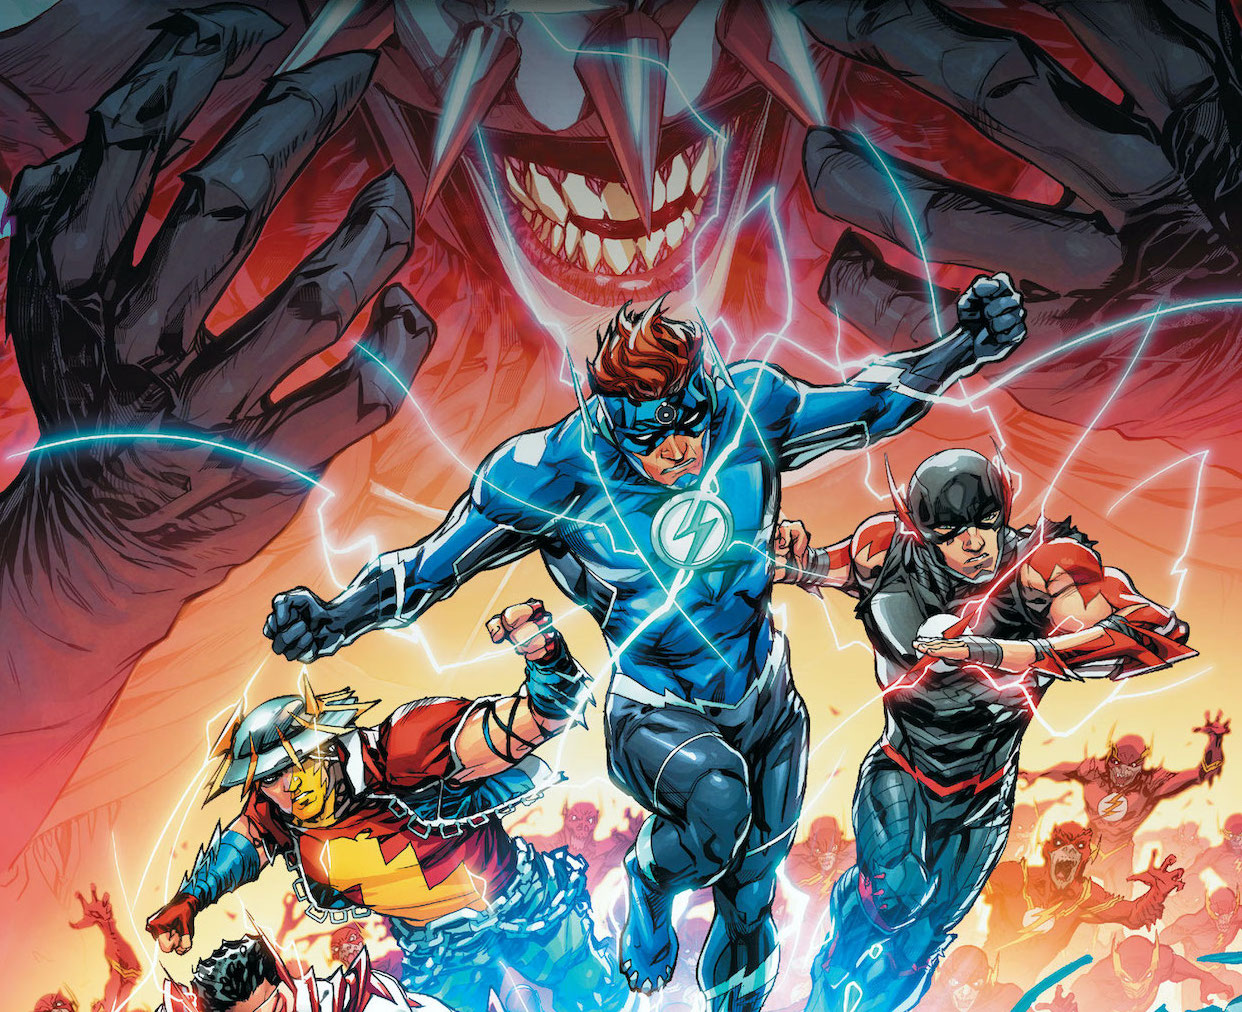 DC Comics unleashing 'Speed Metal' in 'Dark Nights: Death Metal Speed Metal' #1